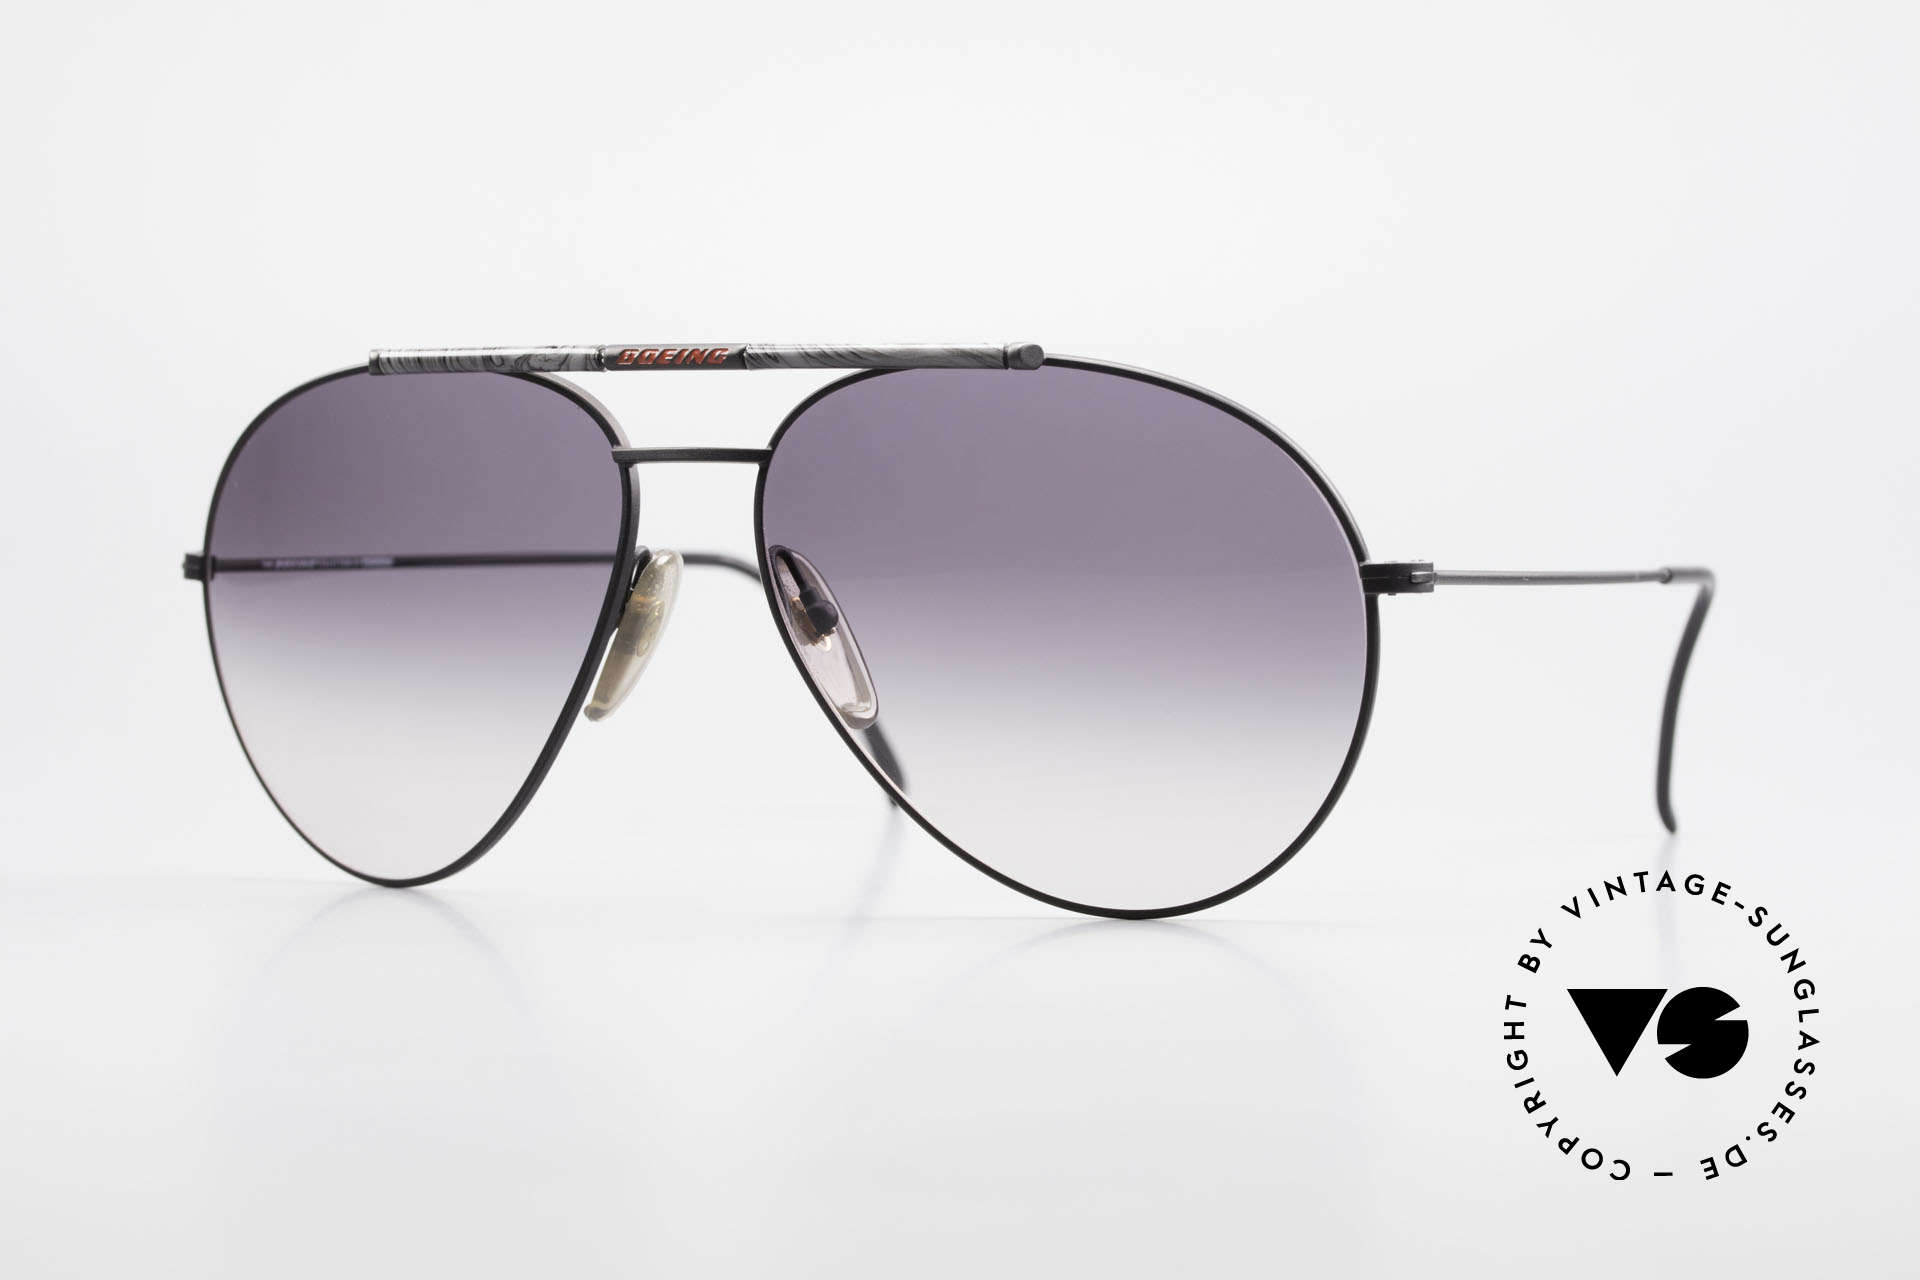 Boeing 5706 Rare 80s Aviator Sunglasses XL, the legendary 'The BOEING Collection by Carrera', Made for Men